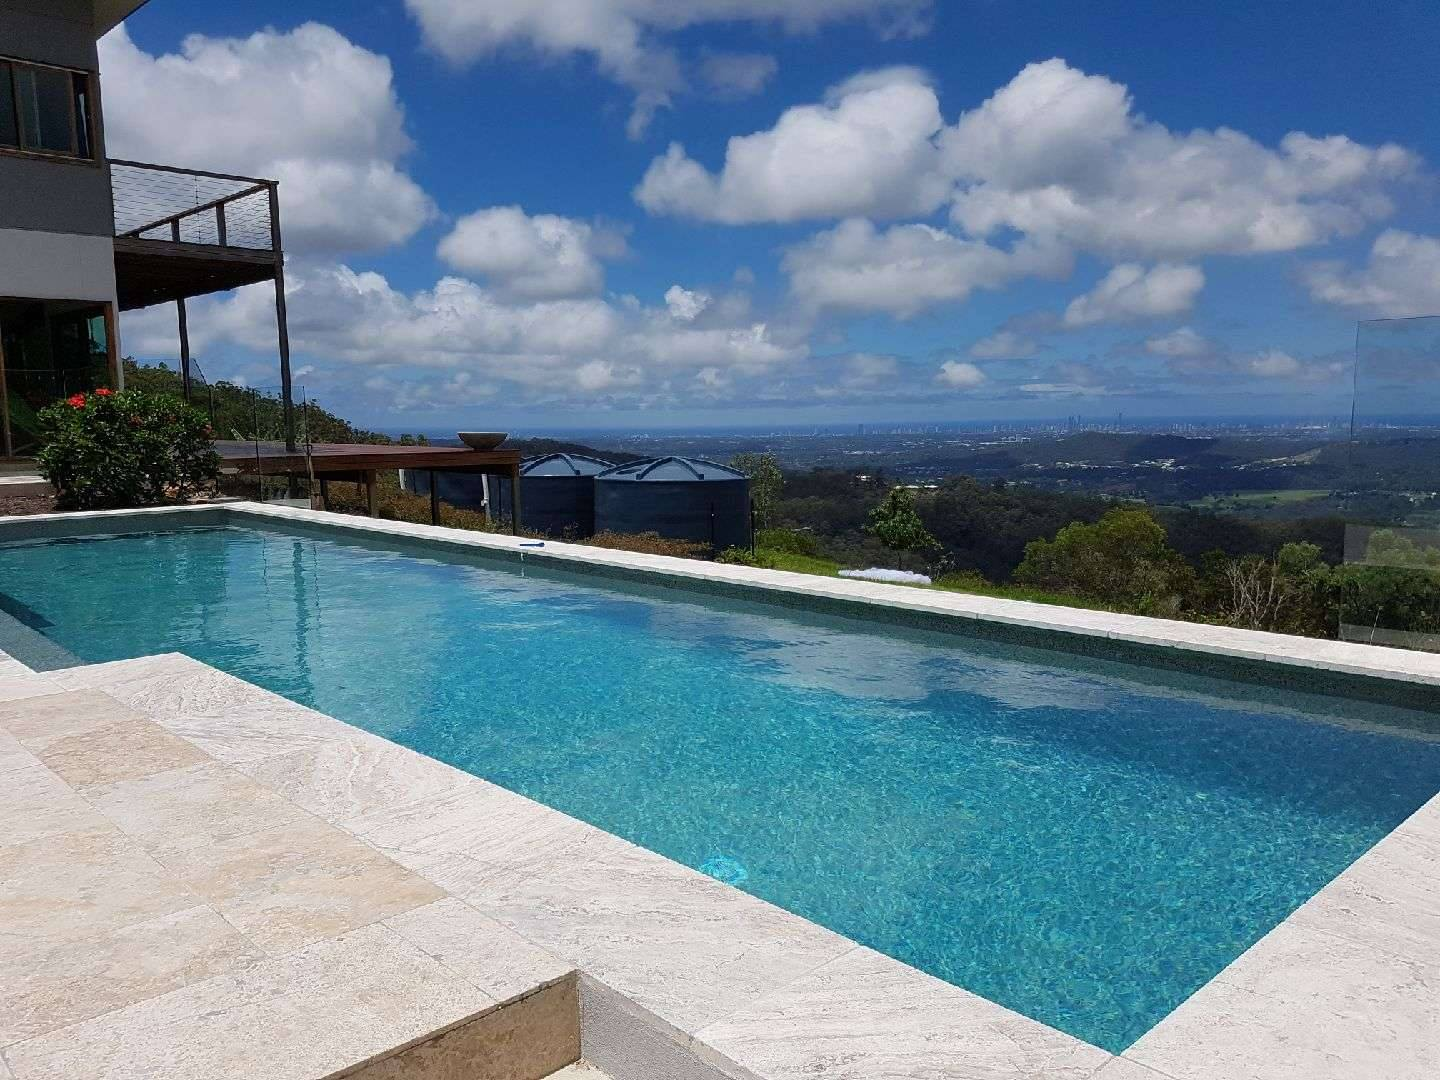 Concrete Pool Gold Coast - Cozy Pools & Spas